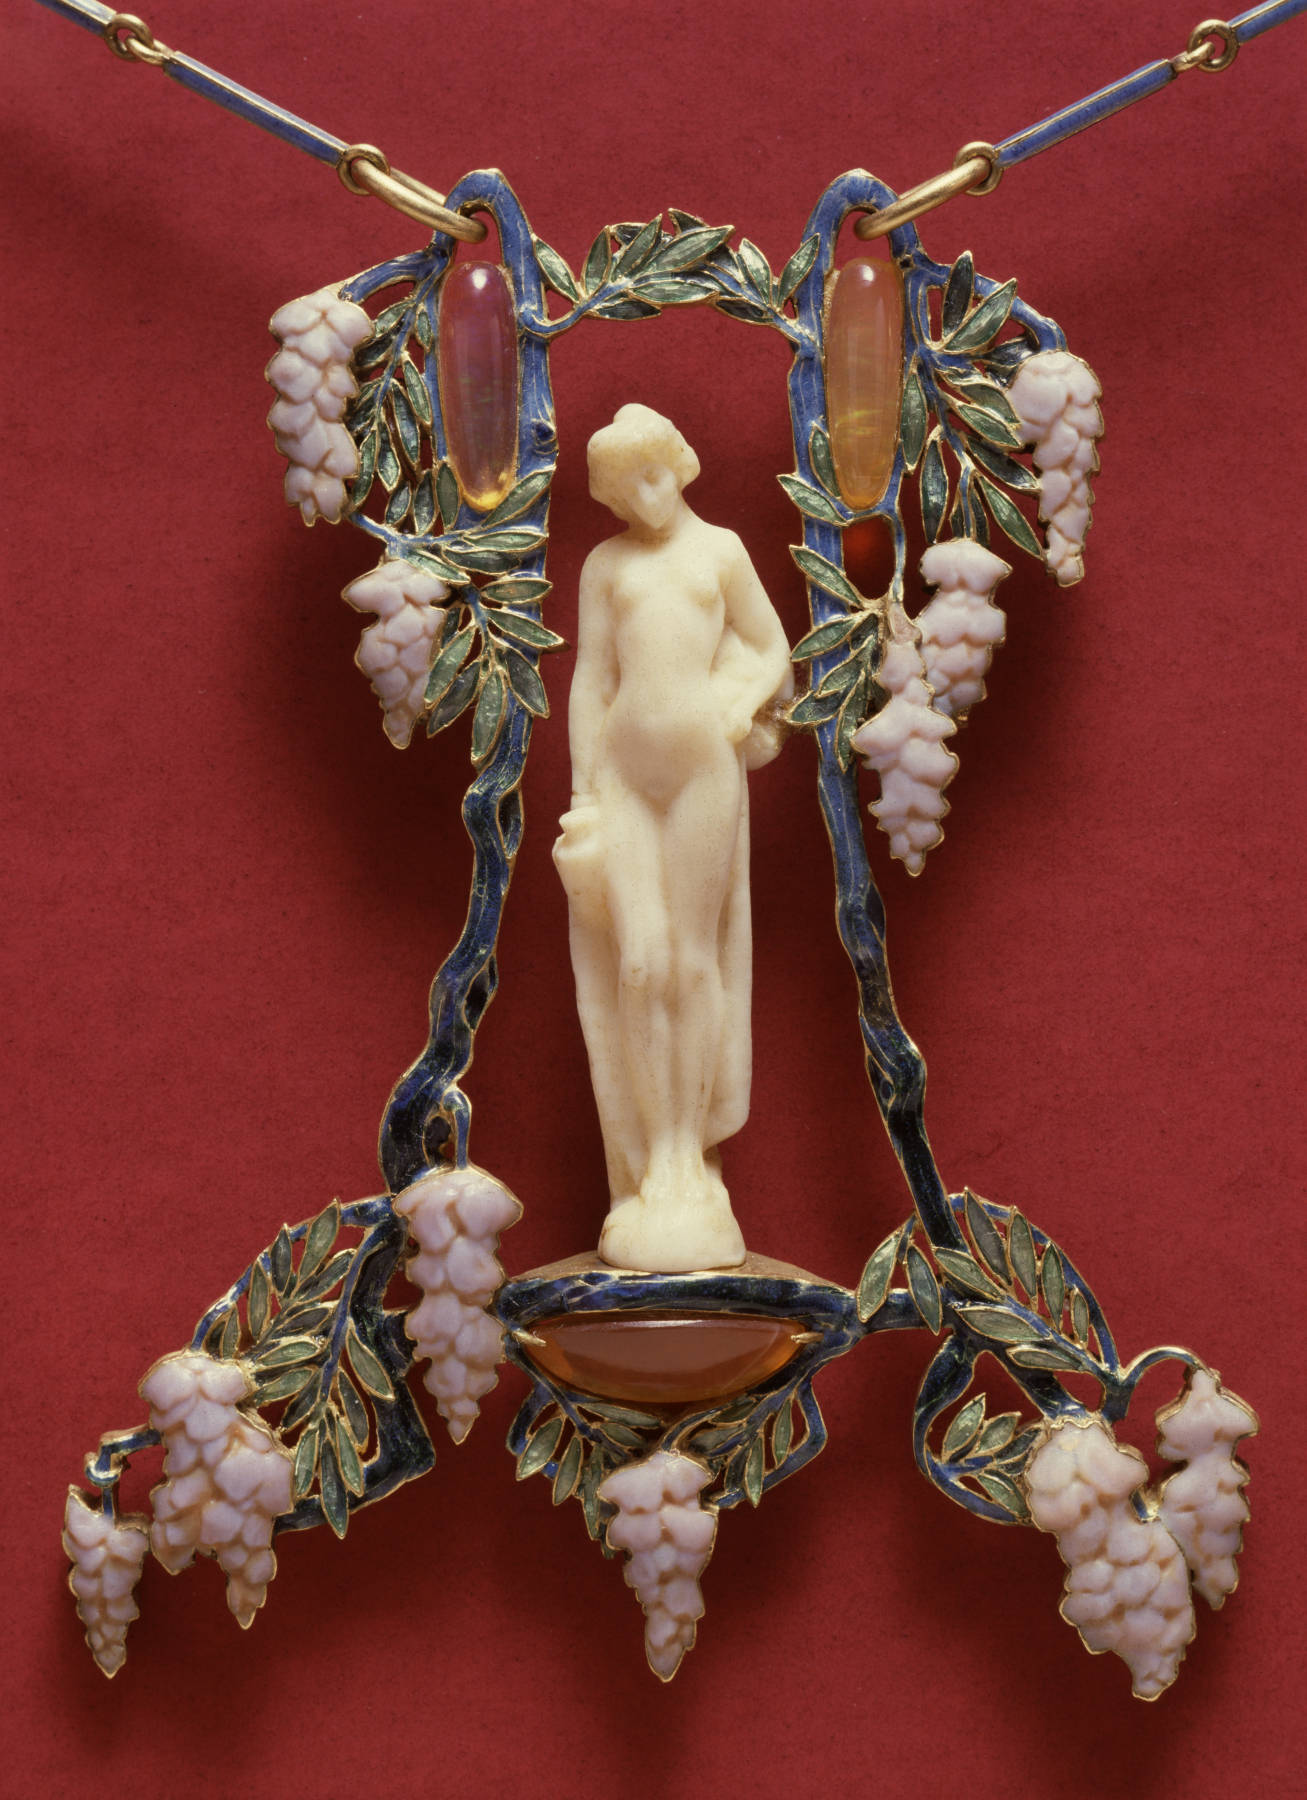 Brooch of Leaves and Berries